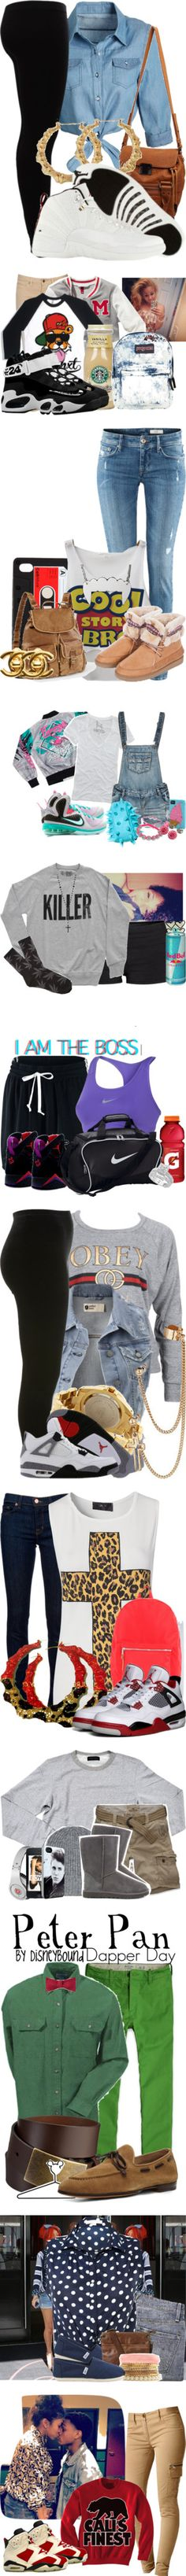 """""""cute 22"""" by dreakagotswagg ❤ liked on Polyvore cute clothes, outfits"""